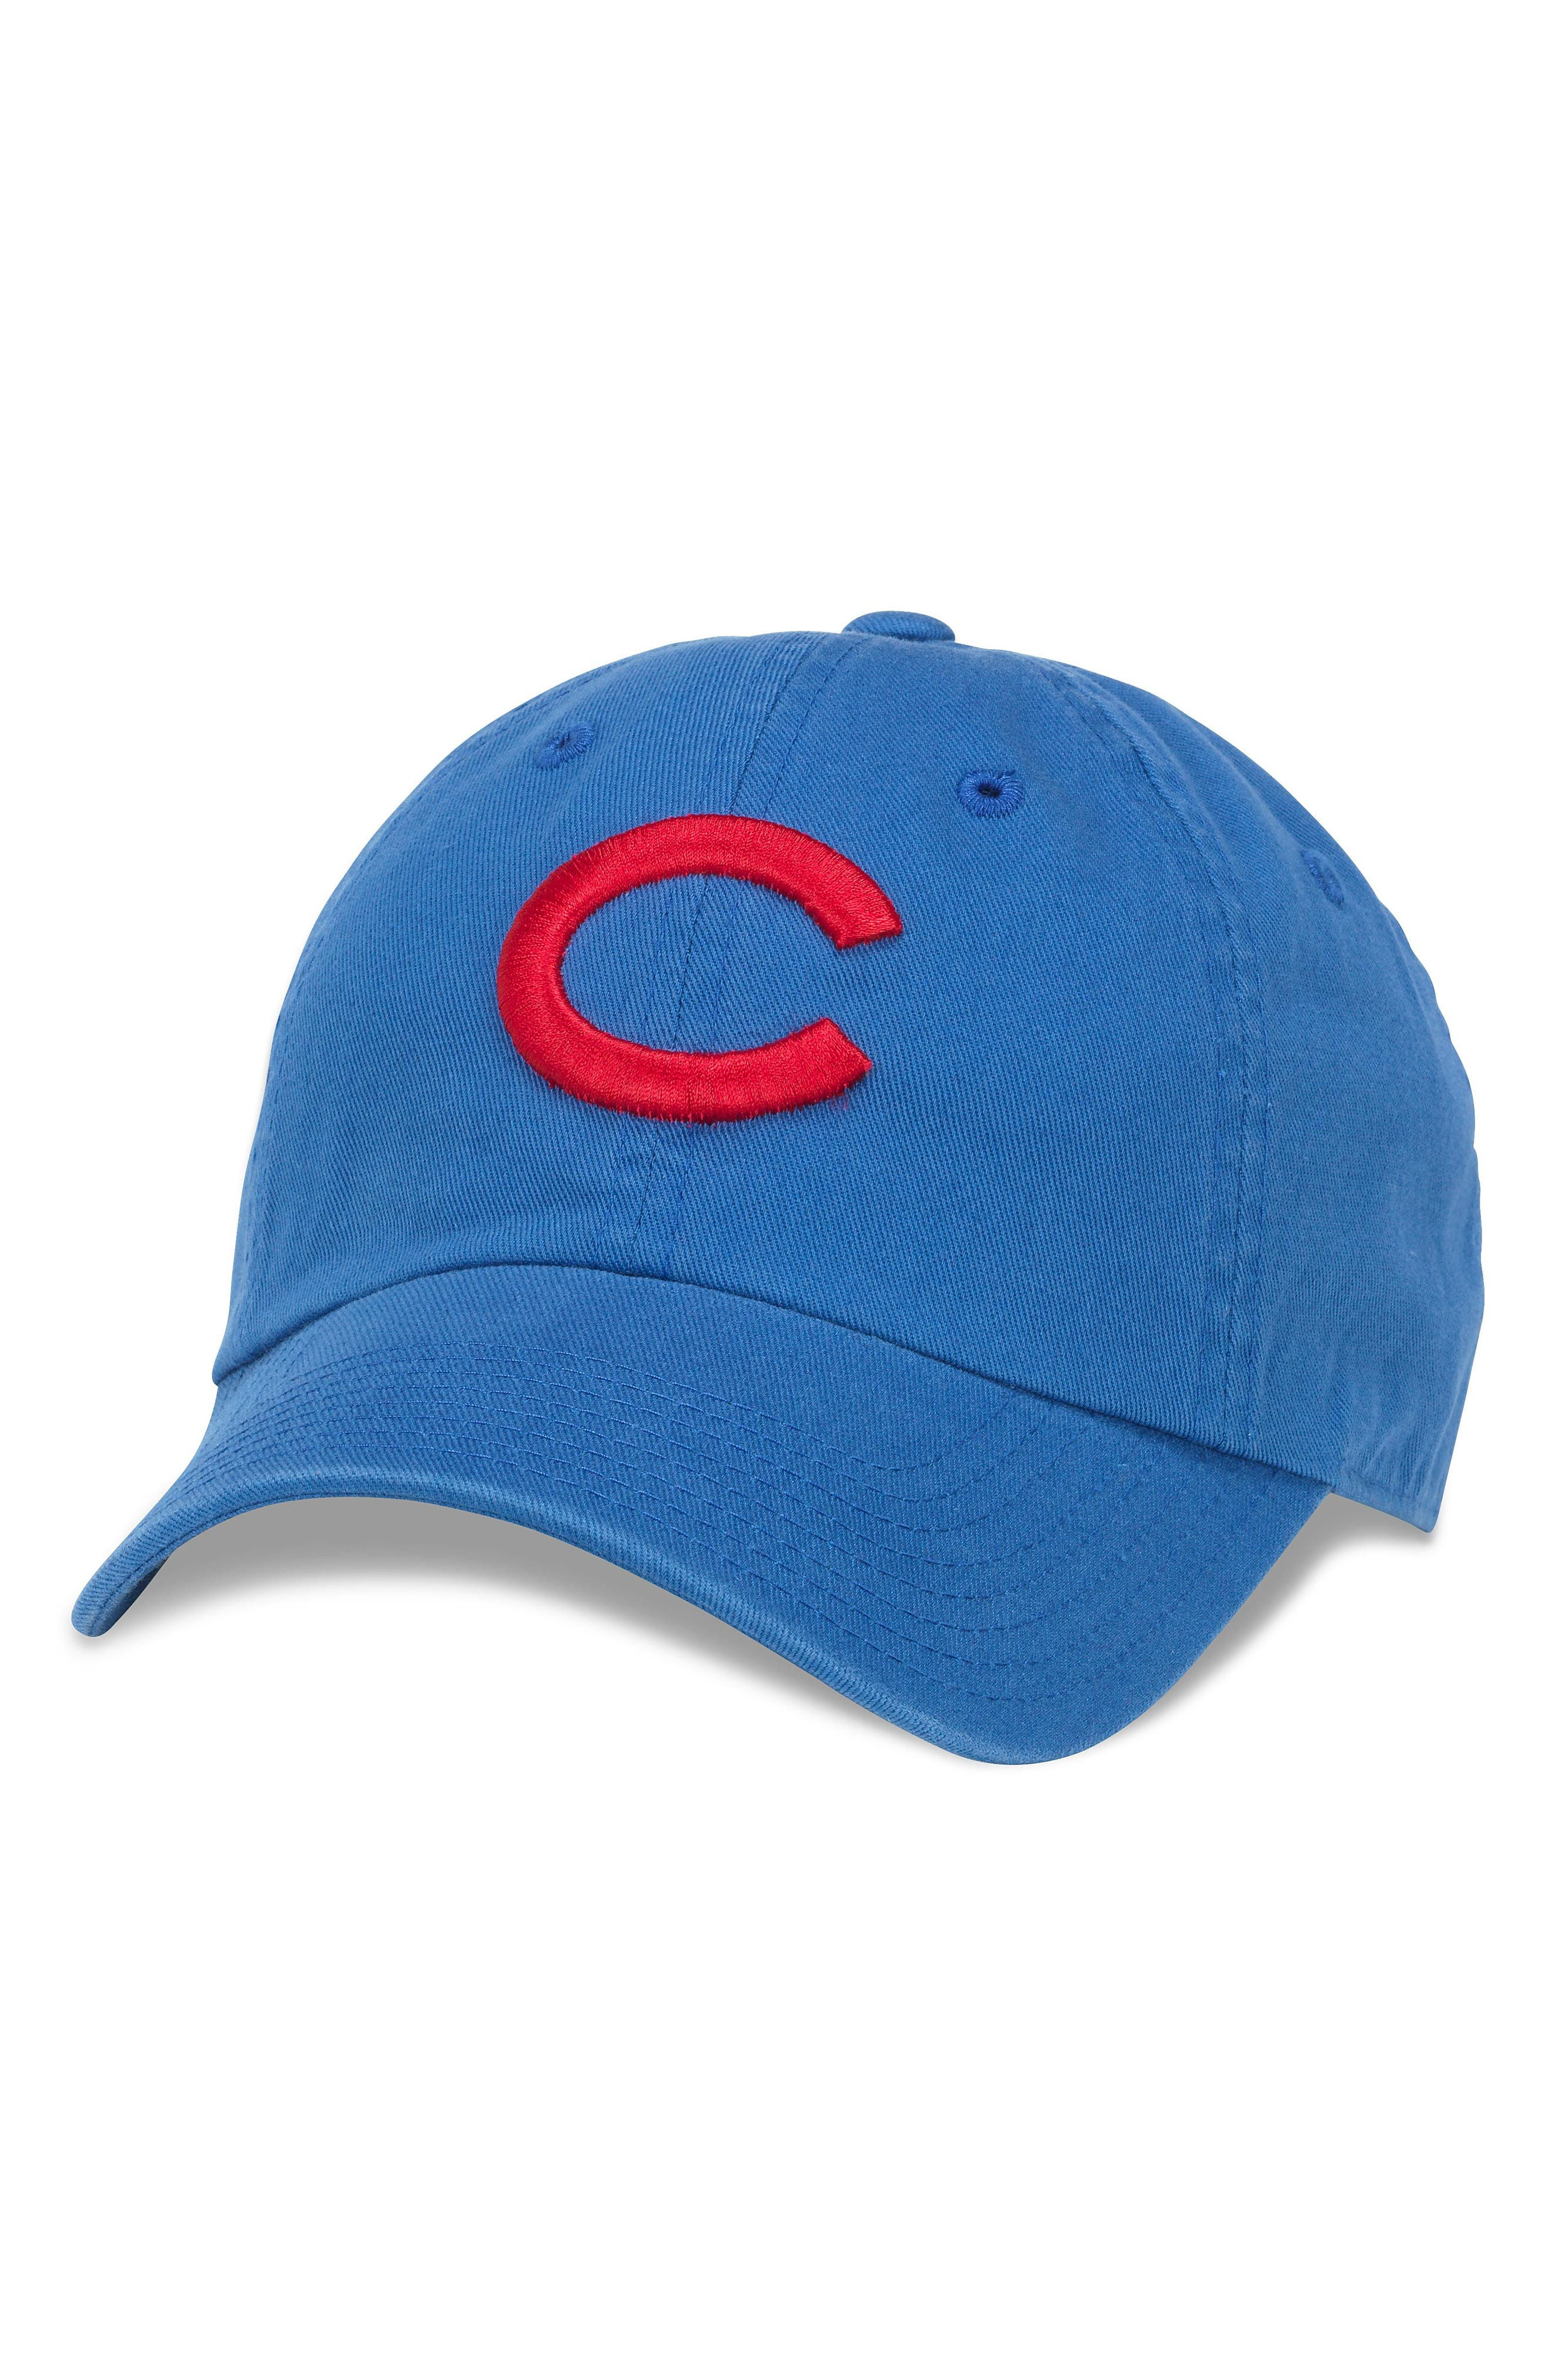 Alternate Image 1 Selected - American Needle 1938 Chicago Cubs Southpaw Ball Cap